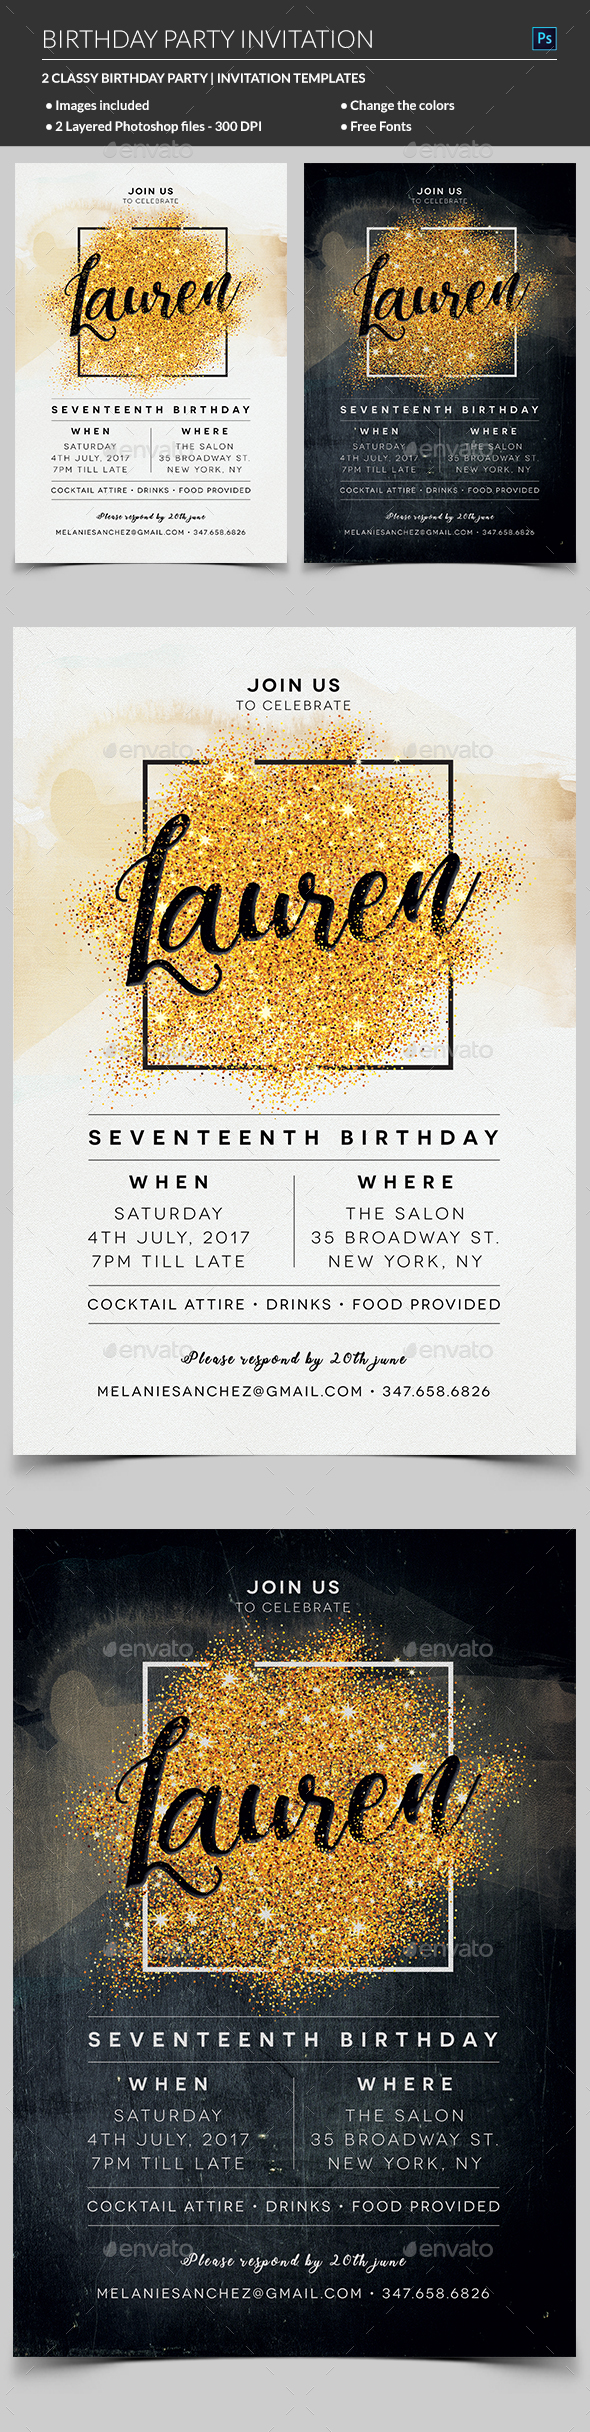 Elegant Birthday Invitation by madridnyc | GraphicRiver